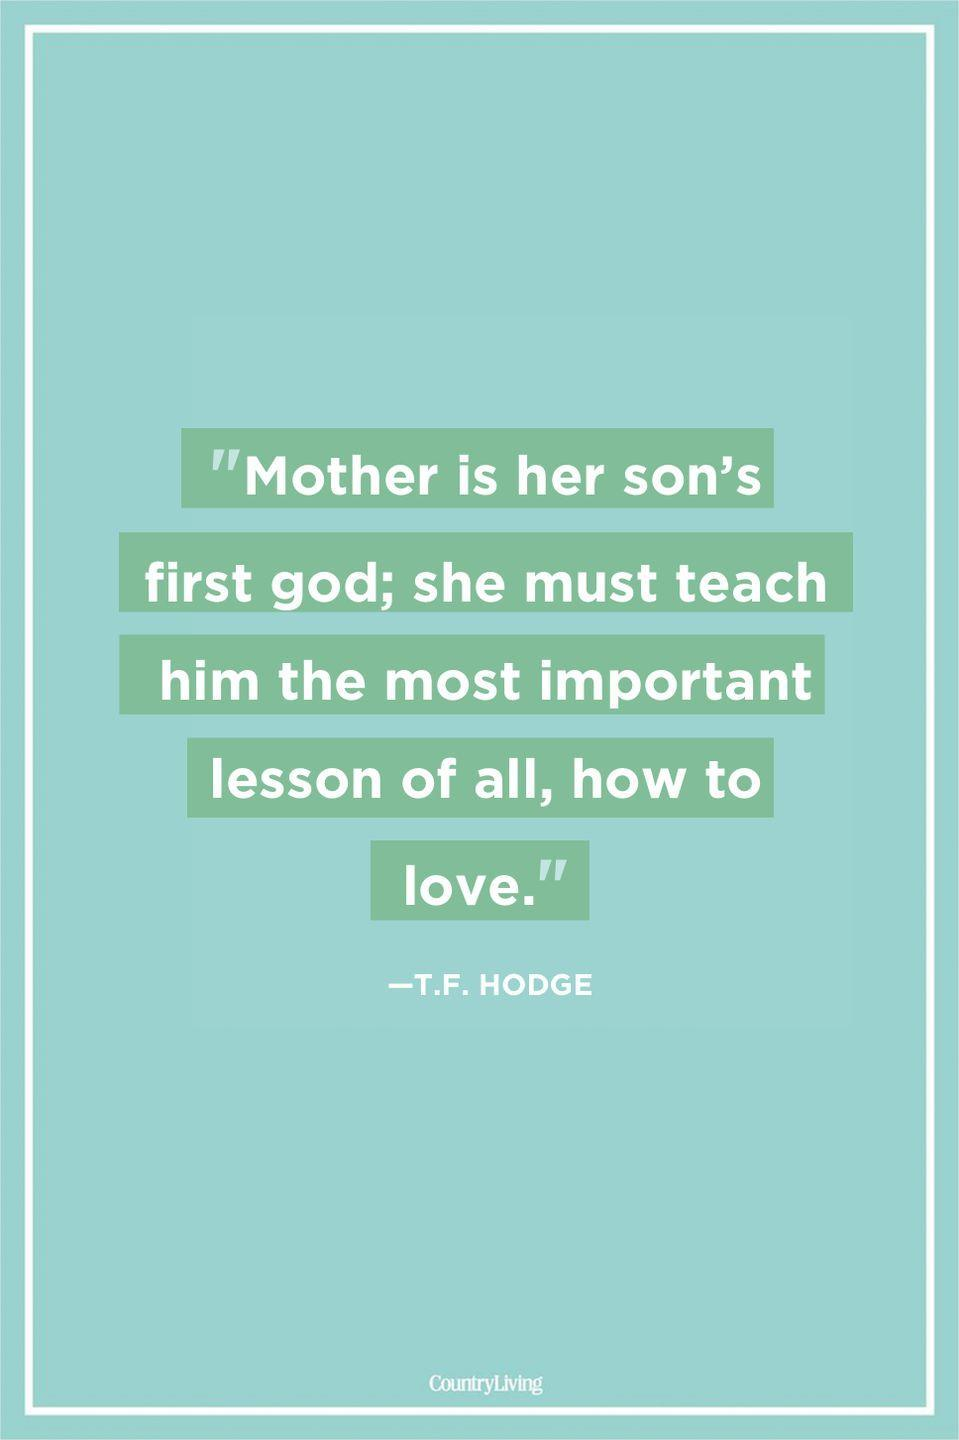 "<p>""Mother is her son's first god; she must teach him the most important lesson of all, how to love.""</p>"